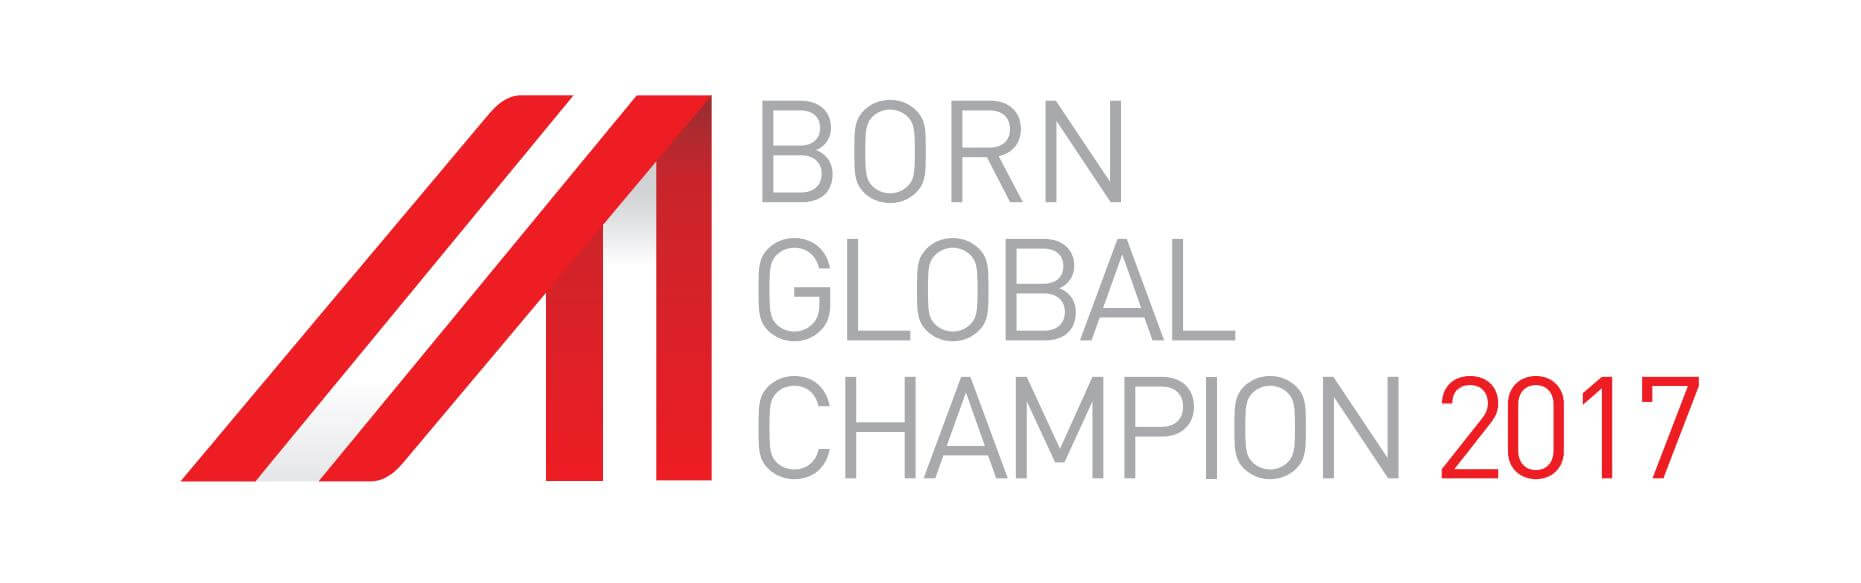 Born Global Champion 2017 LOGO